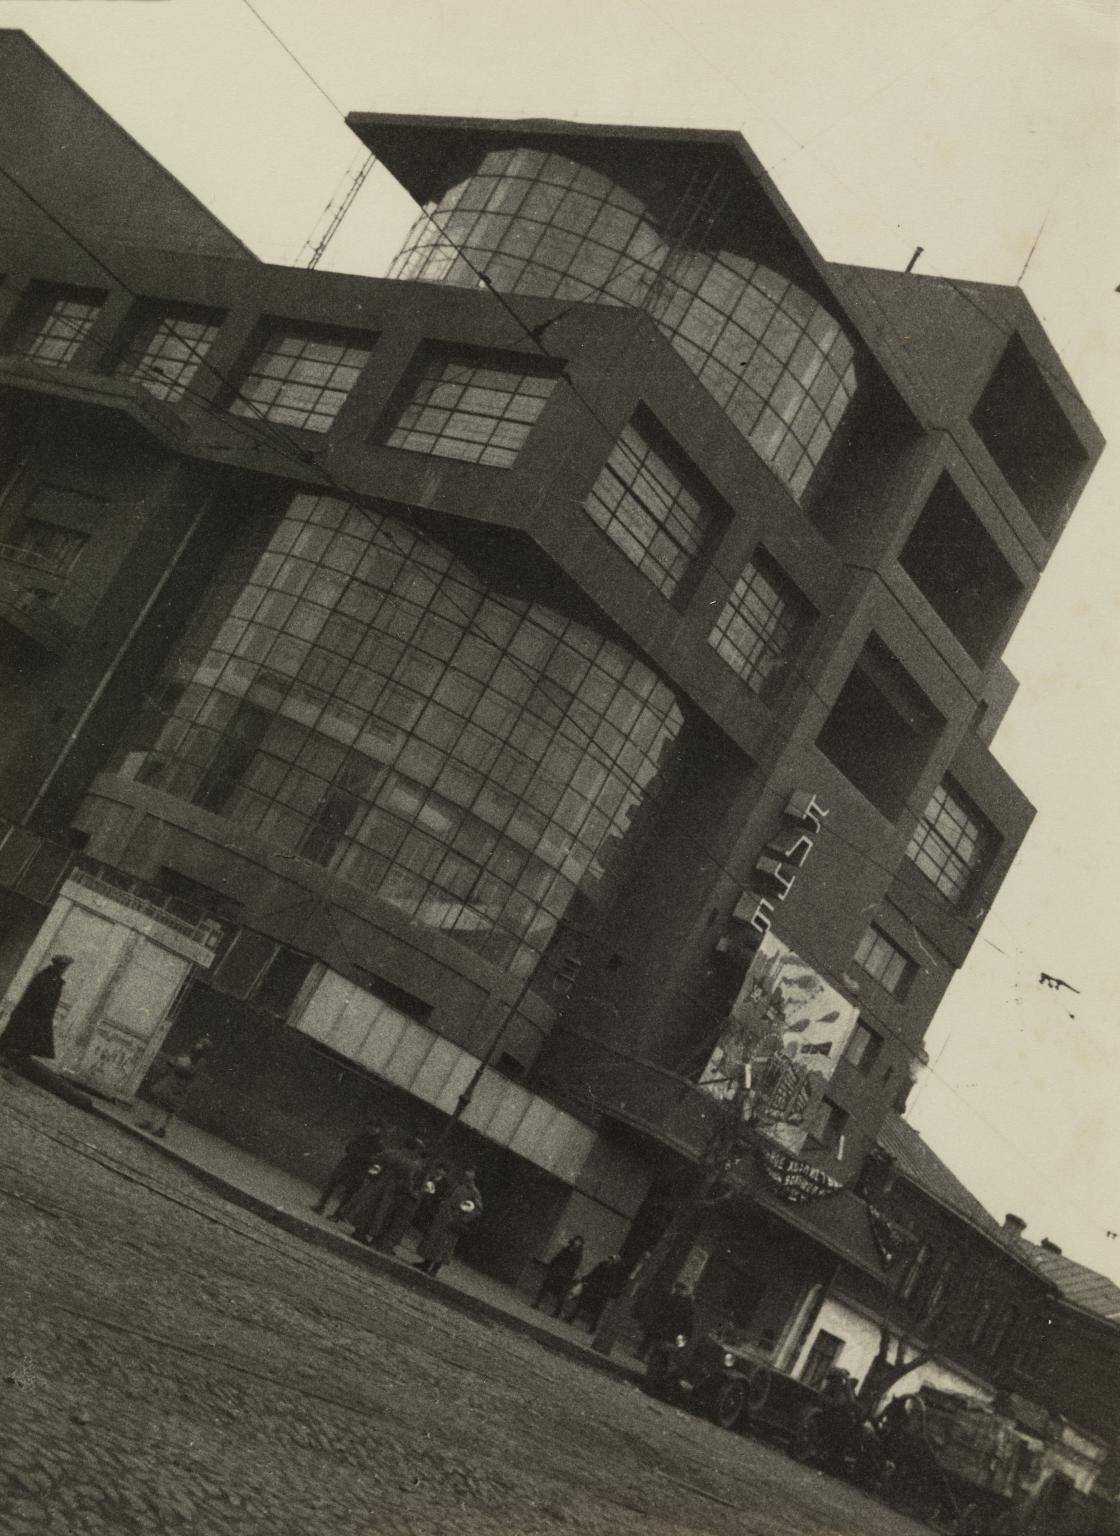 Chernyakhovsk's architecture in 1931, photo by Iwao Yamawaki.